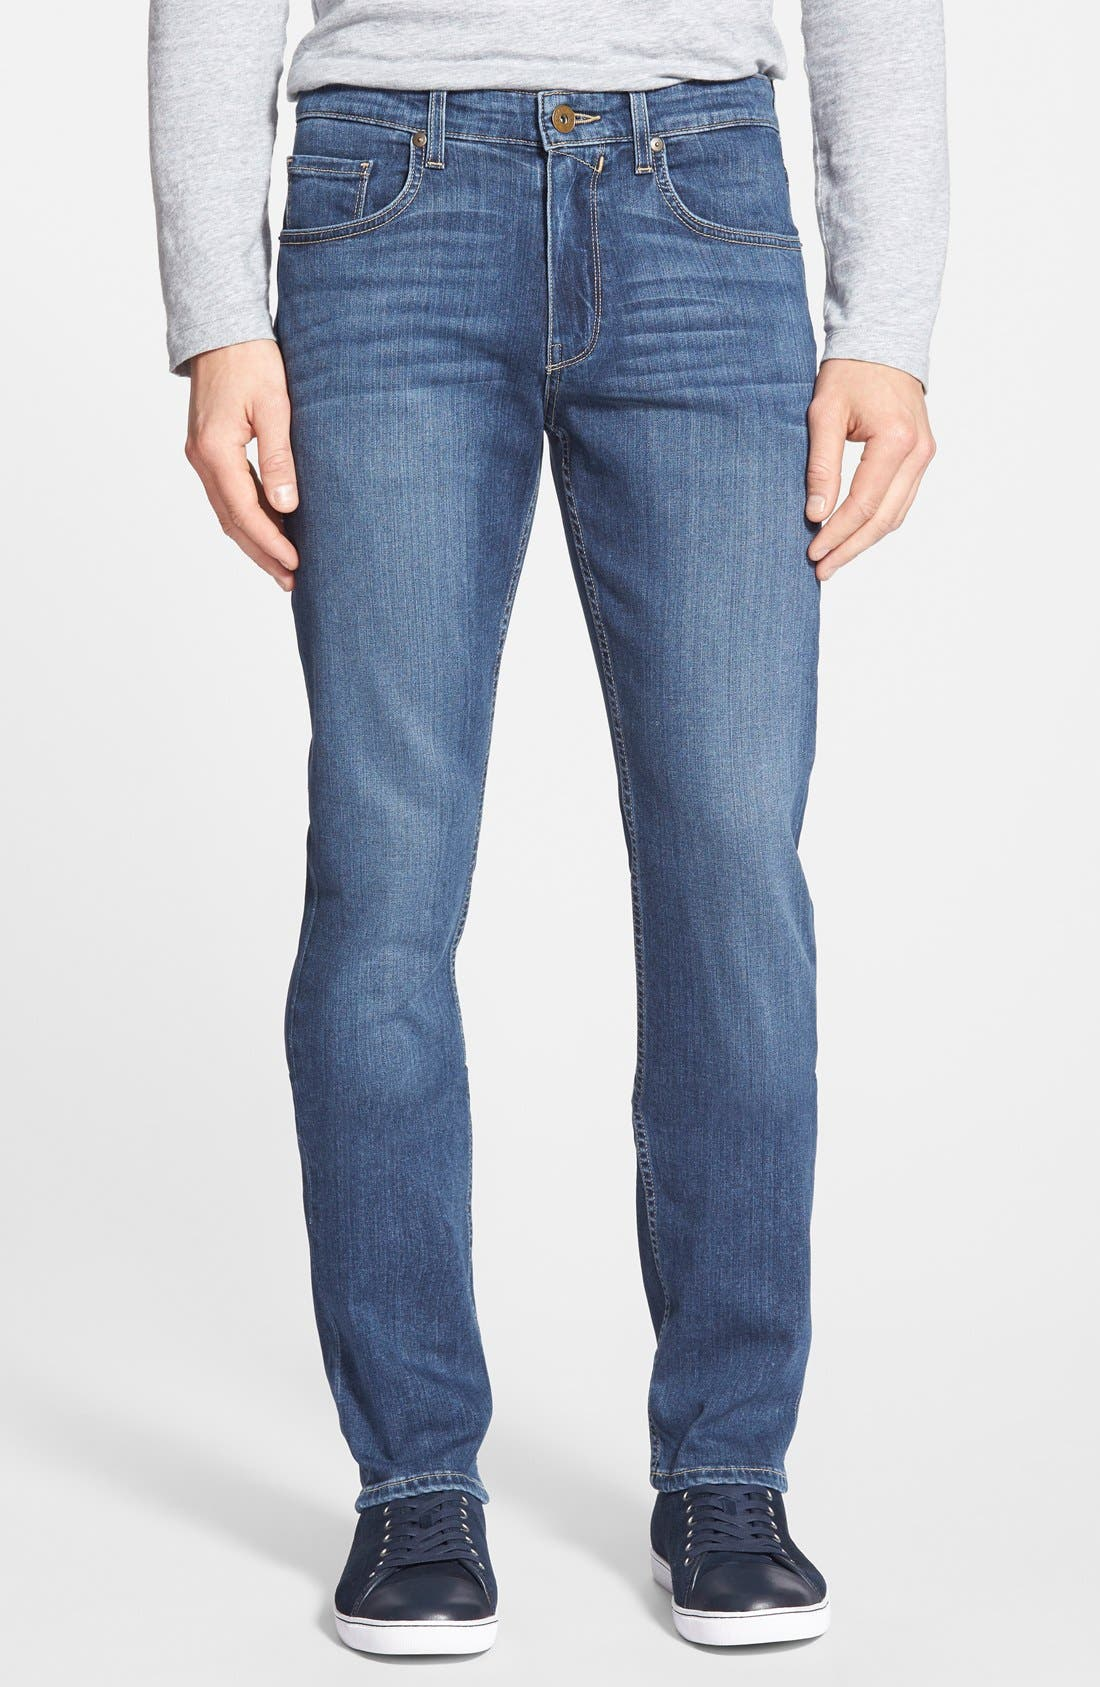 Transcend - Federal Slim Straight Leg Jeans,                             Main thumbnail 1, color,                             Birch